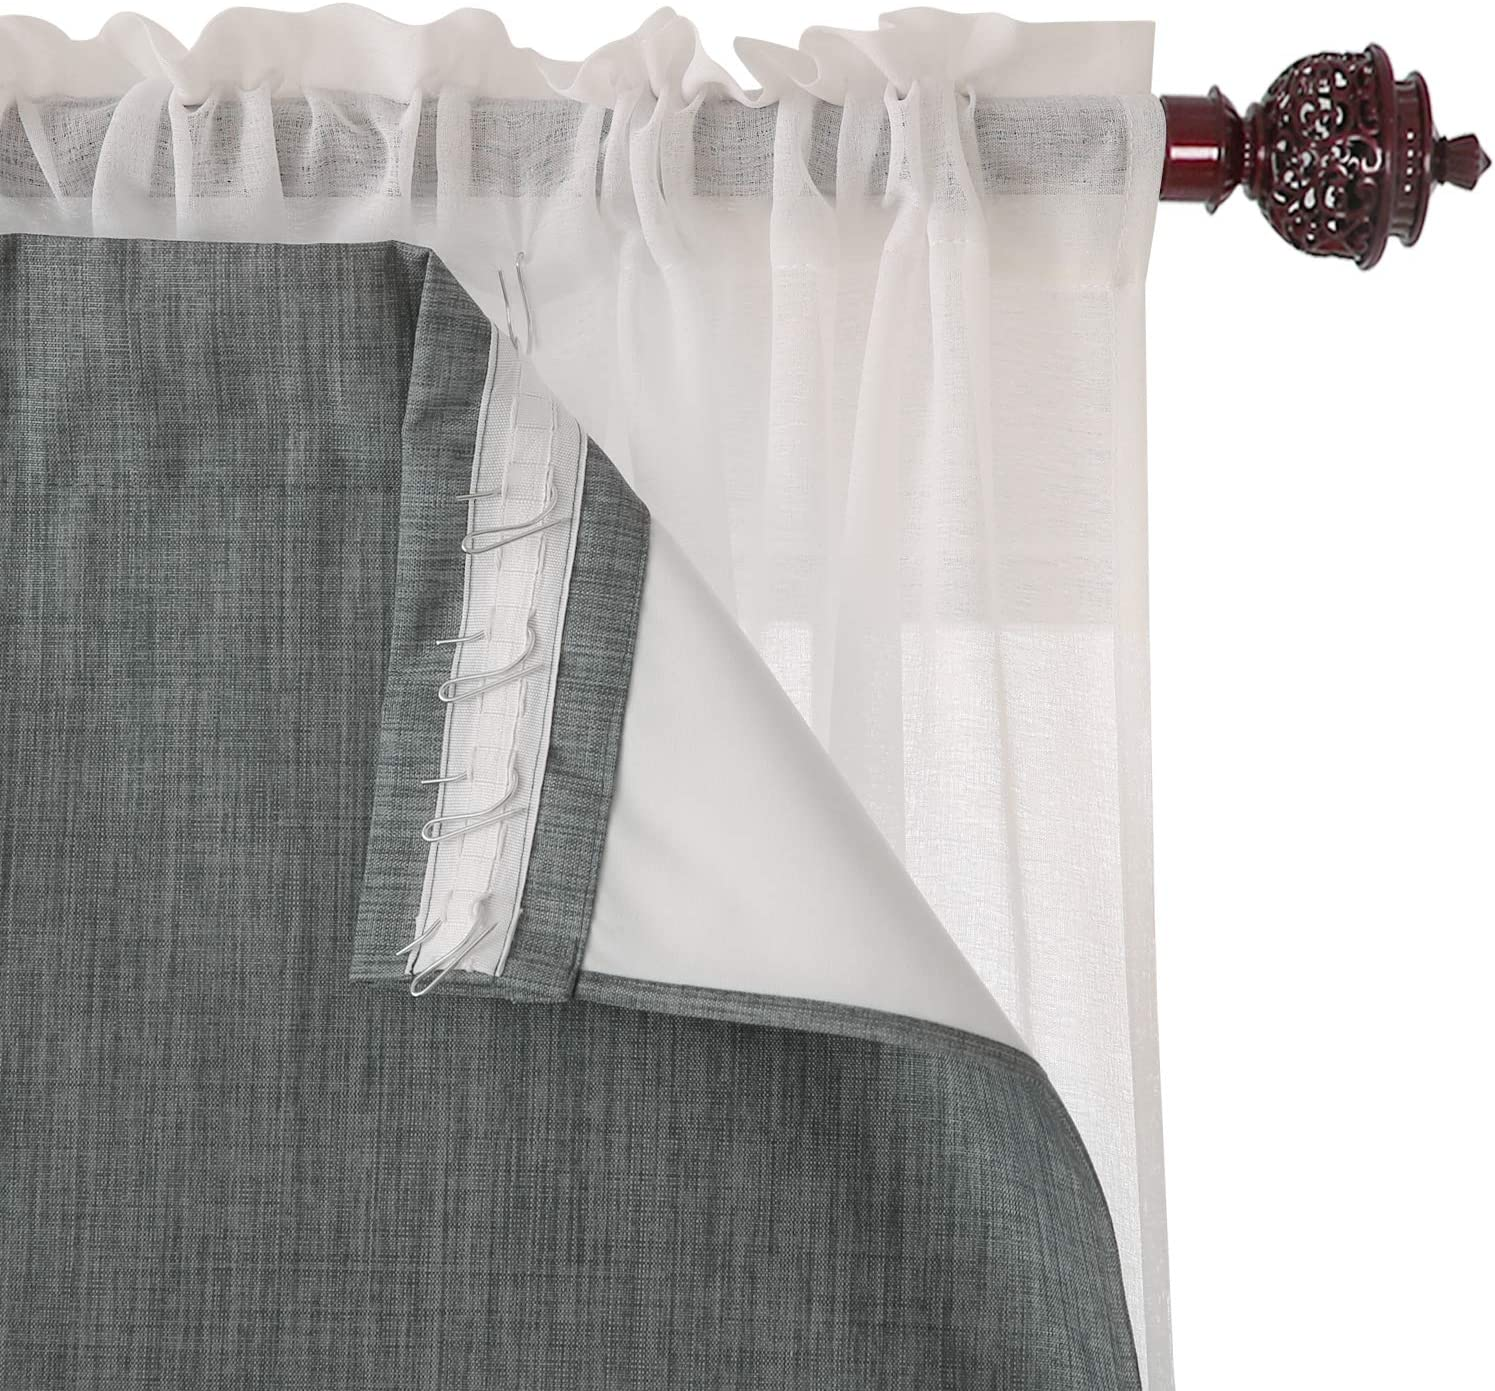 Deconovo Curtain Rod Pocket Blackout Triple-Pass with Finally resale start Coat Liner Max 88% OFF